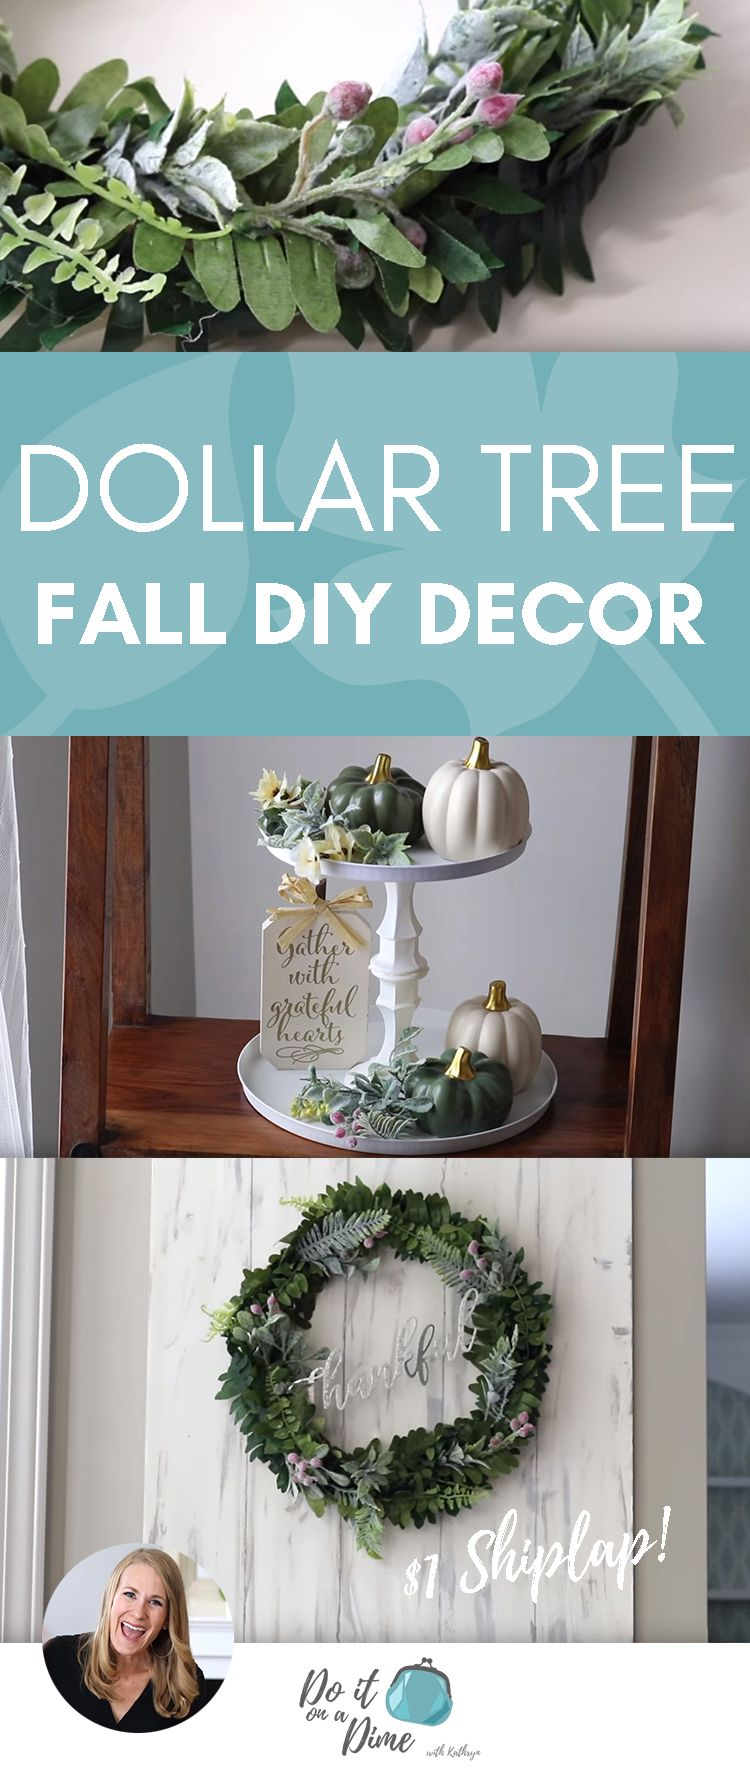 DOLLAR TREE FALL DIYS #dollartreecrafts